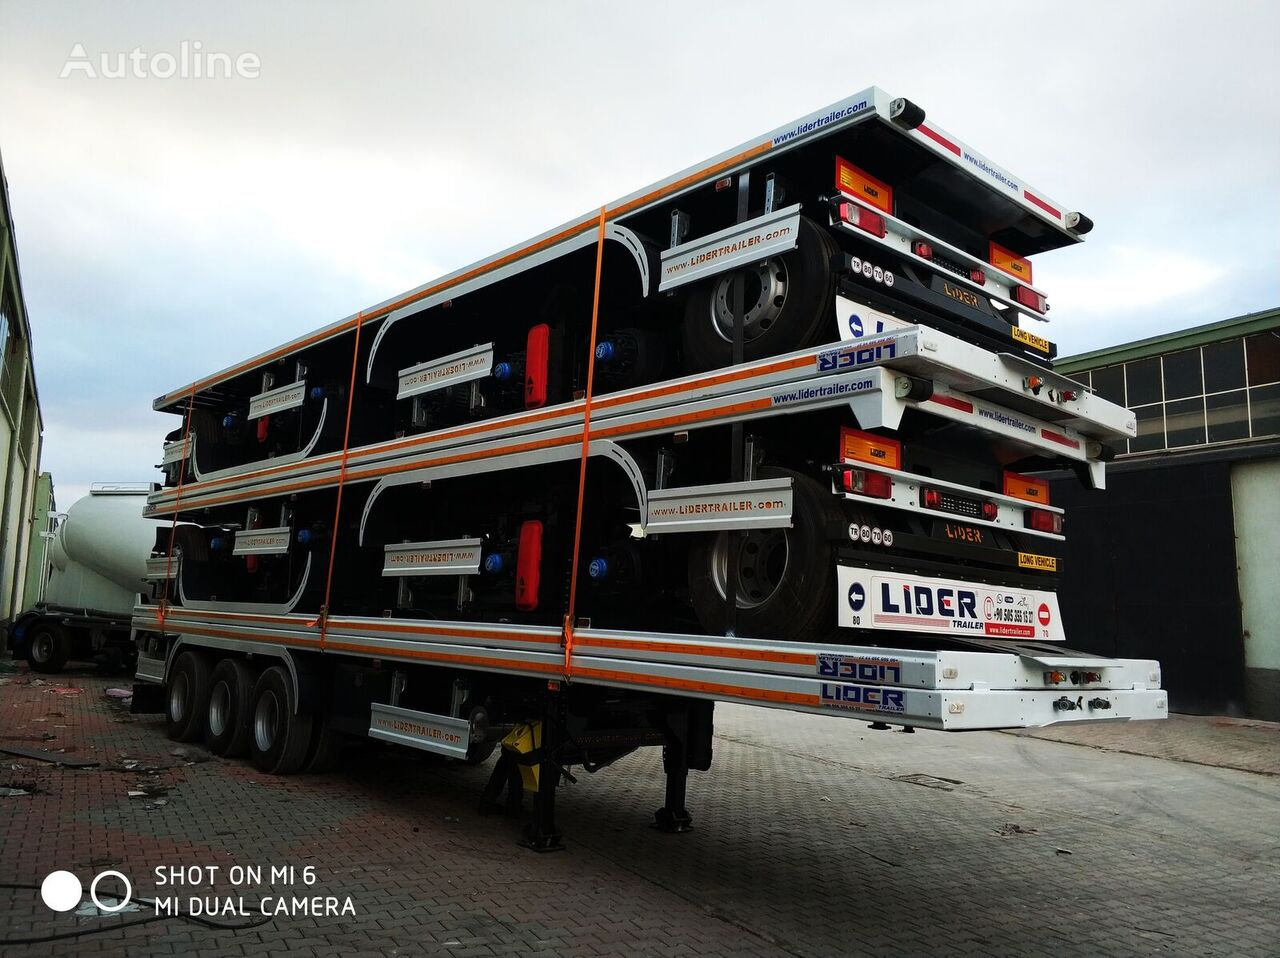 nieuw LIDER NEW 2020 MODELS YEAR (MANUFACTURER COMPANY LIDER TRAILER container oplegger